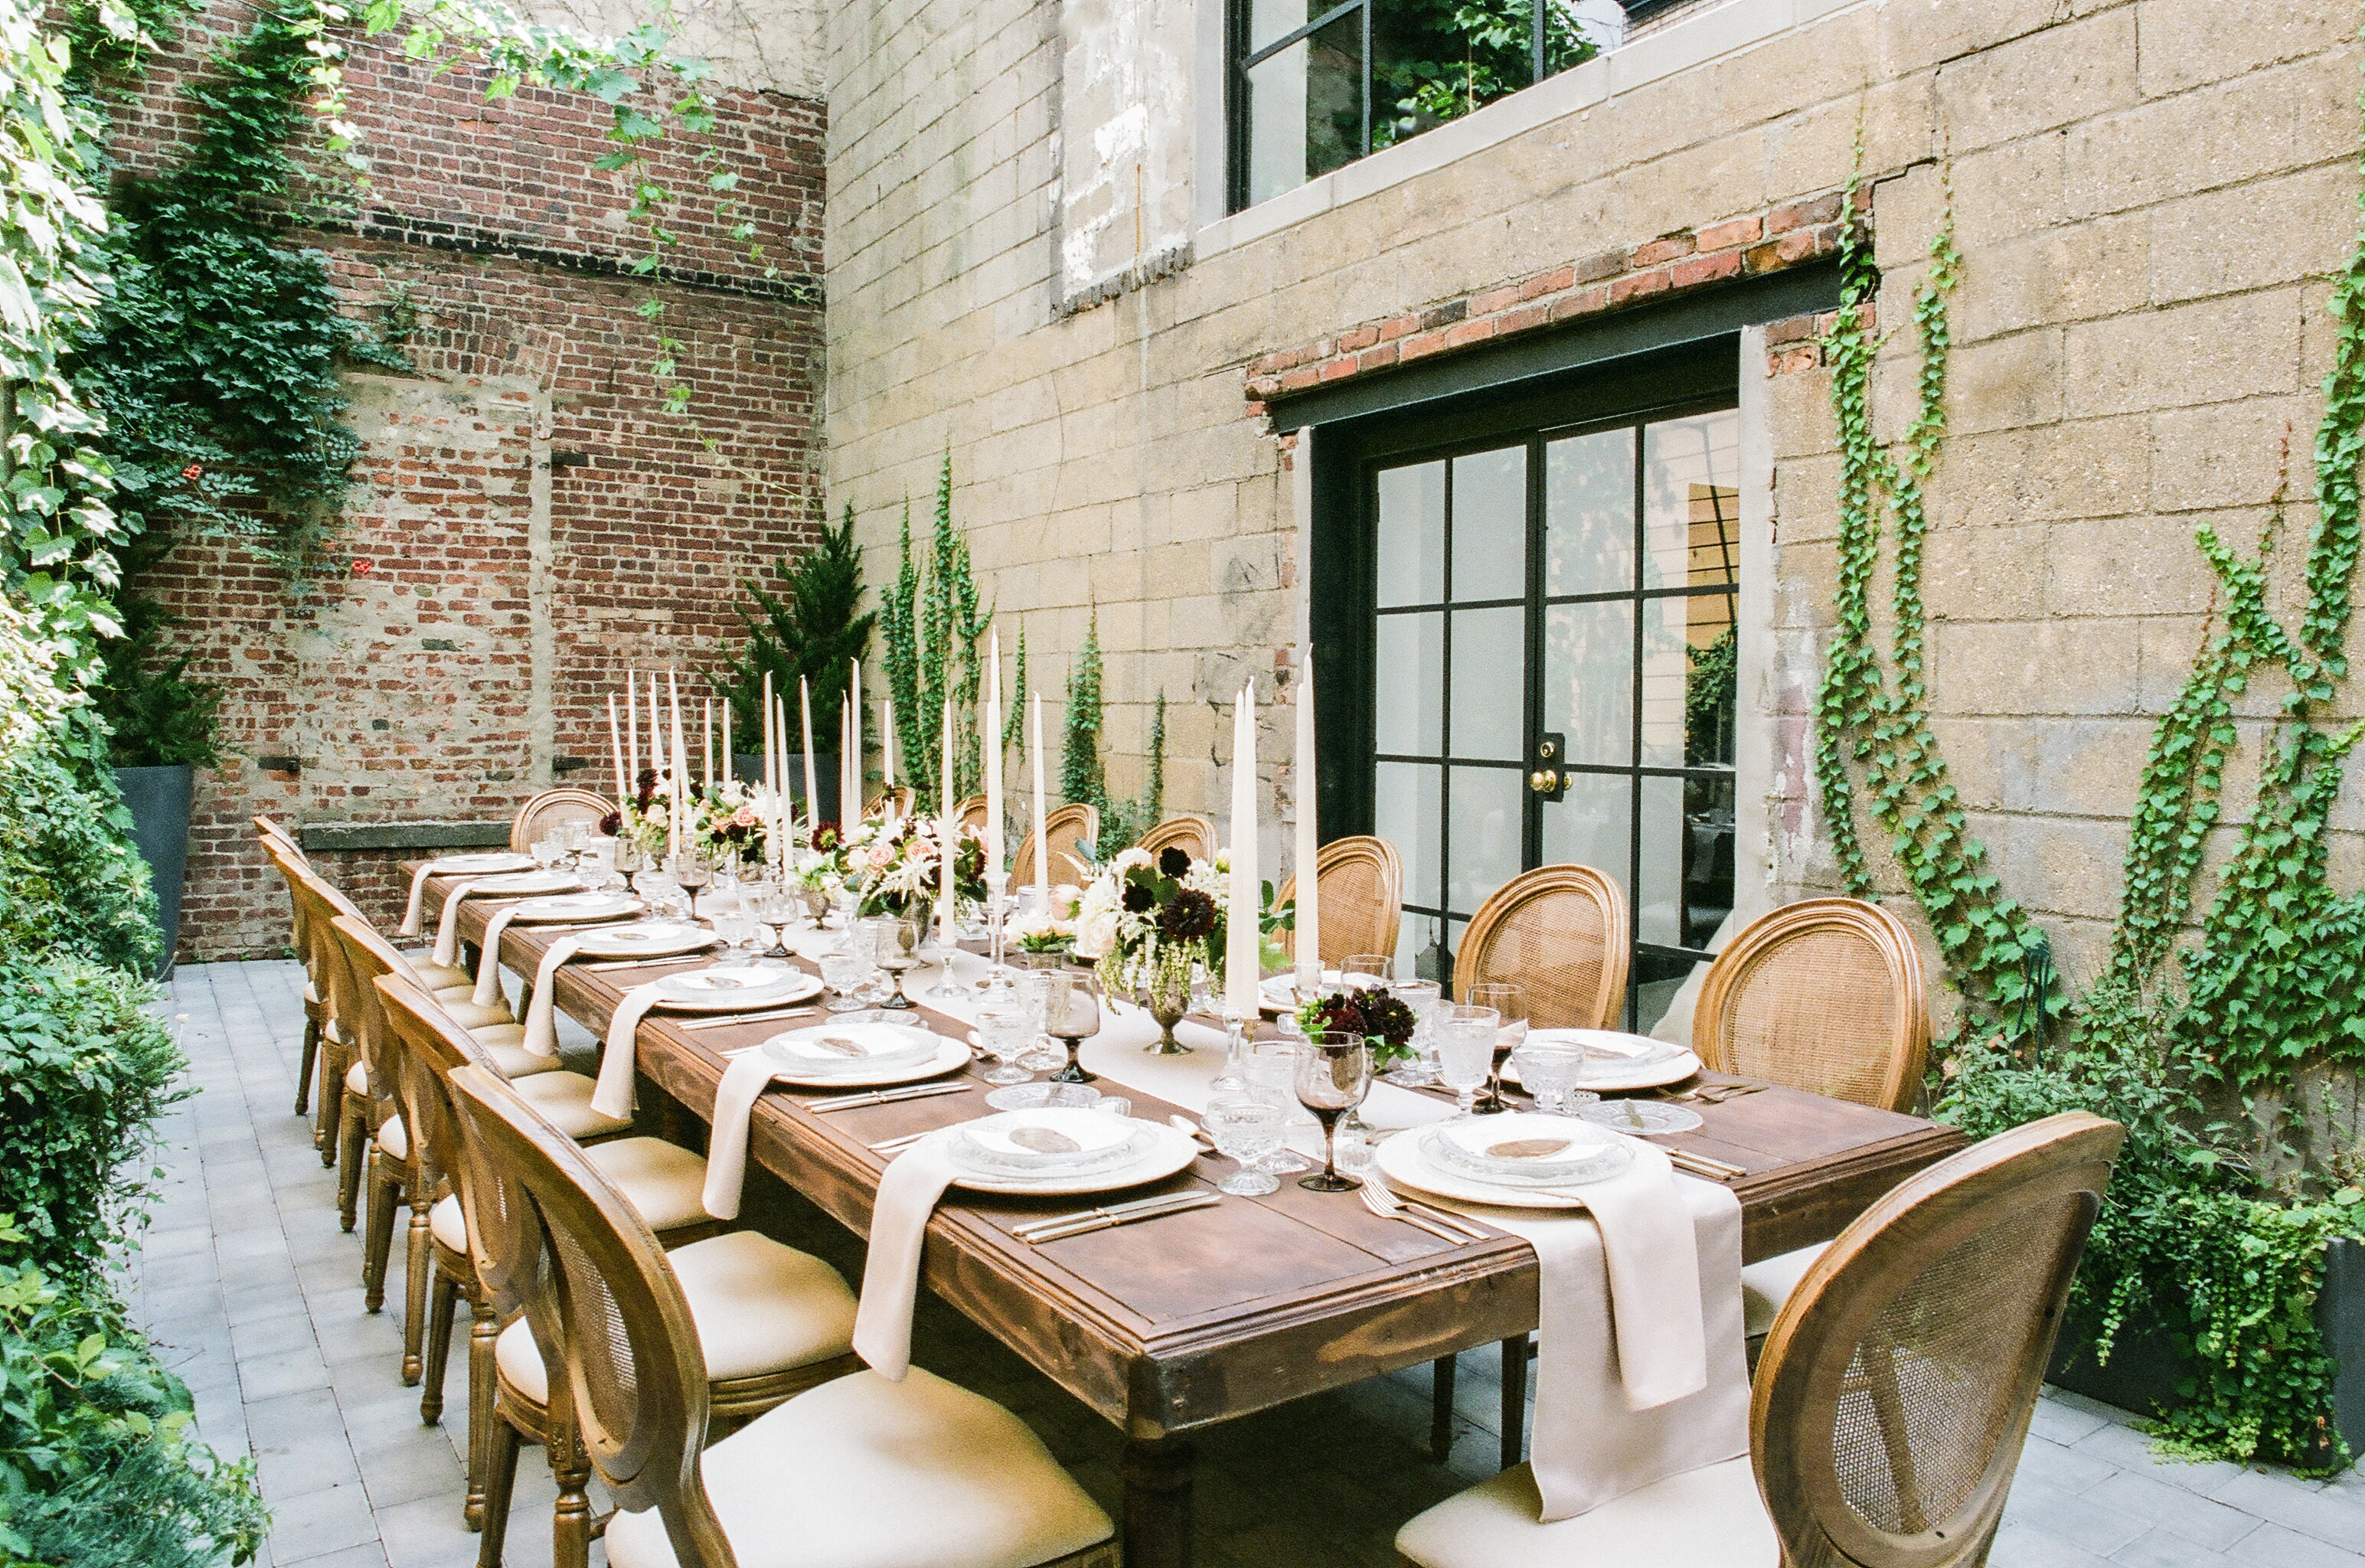 Chic Terrace Dinner Party - Hessney and Co.